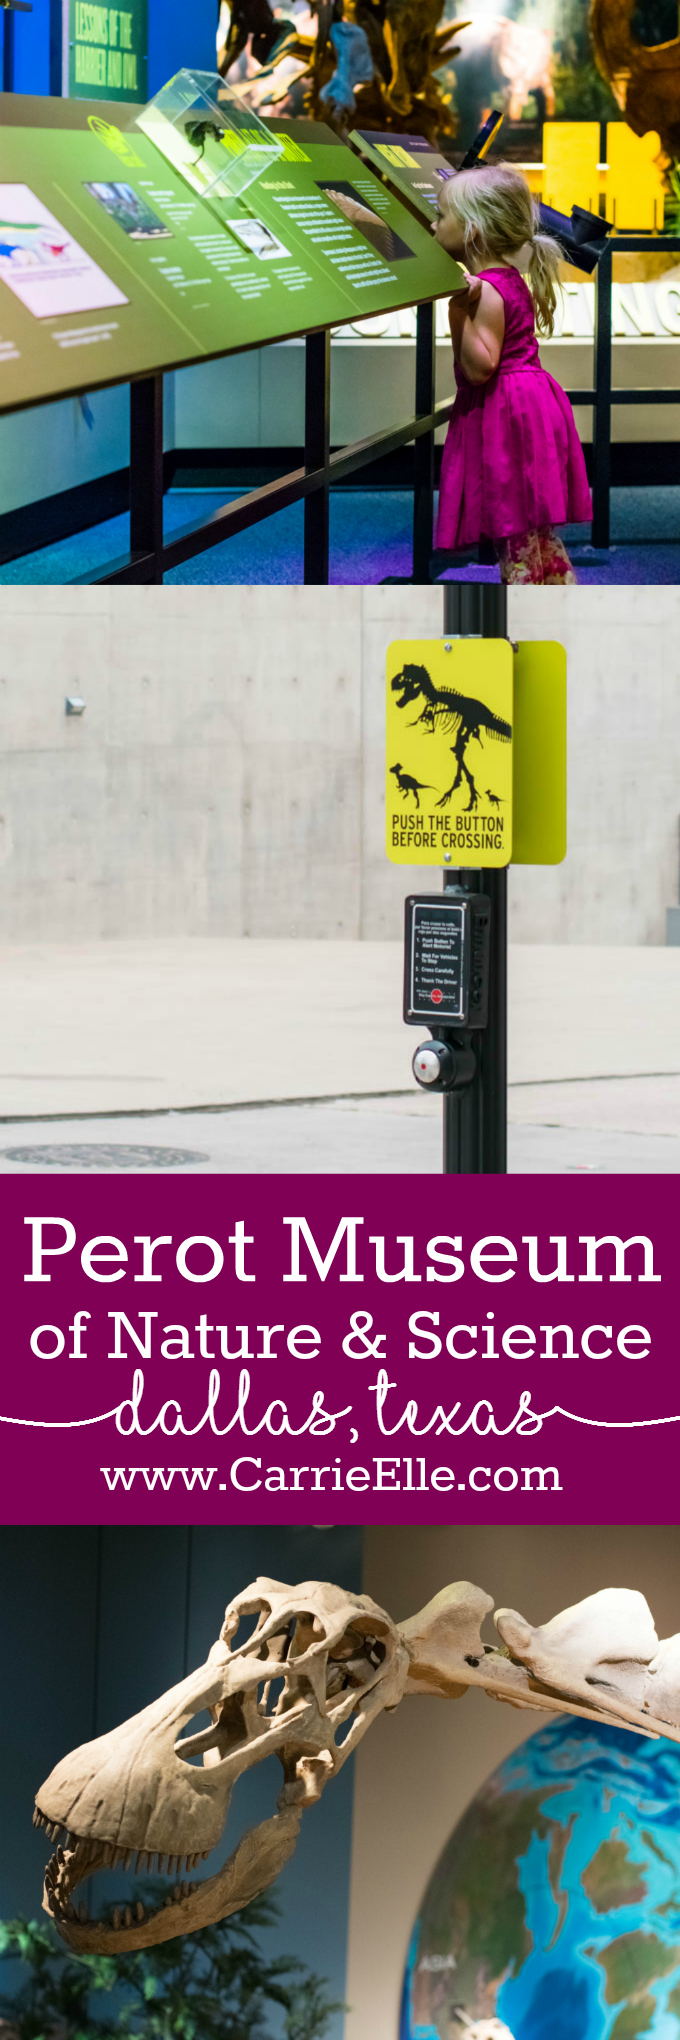 Perot Museum Dallas